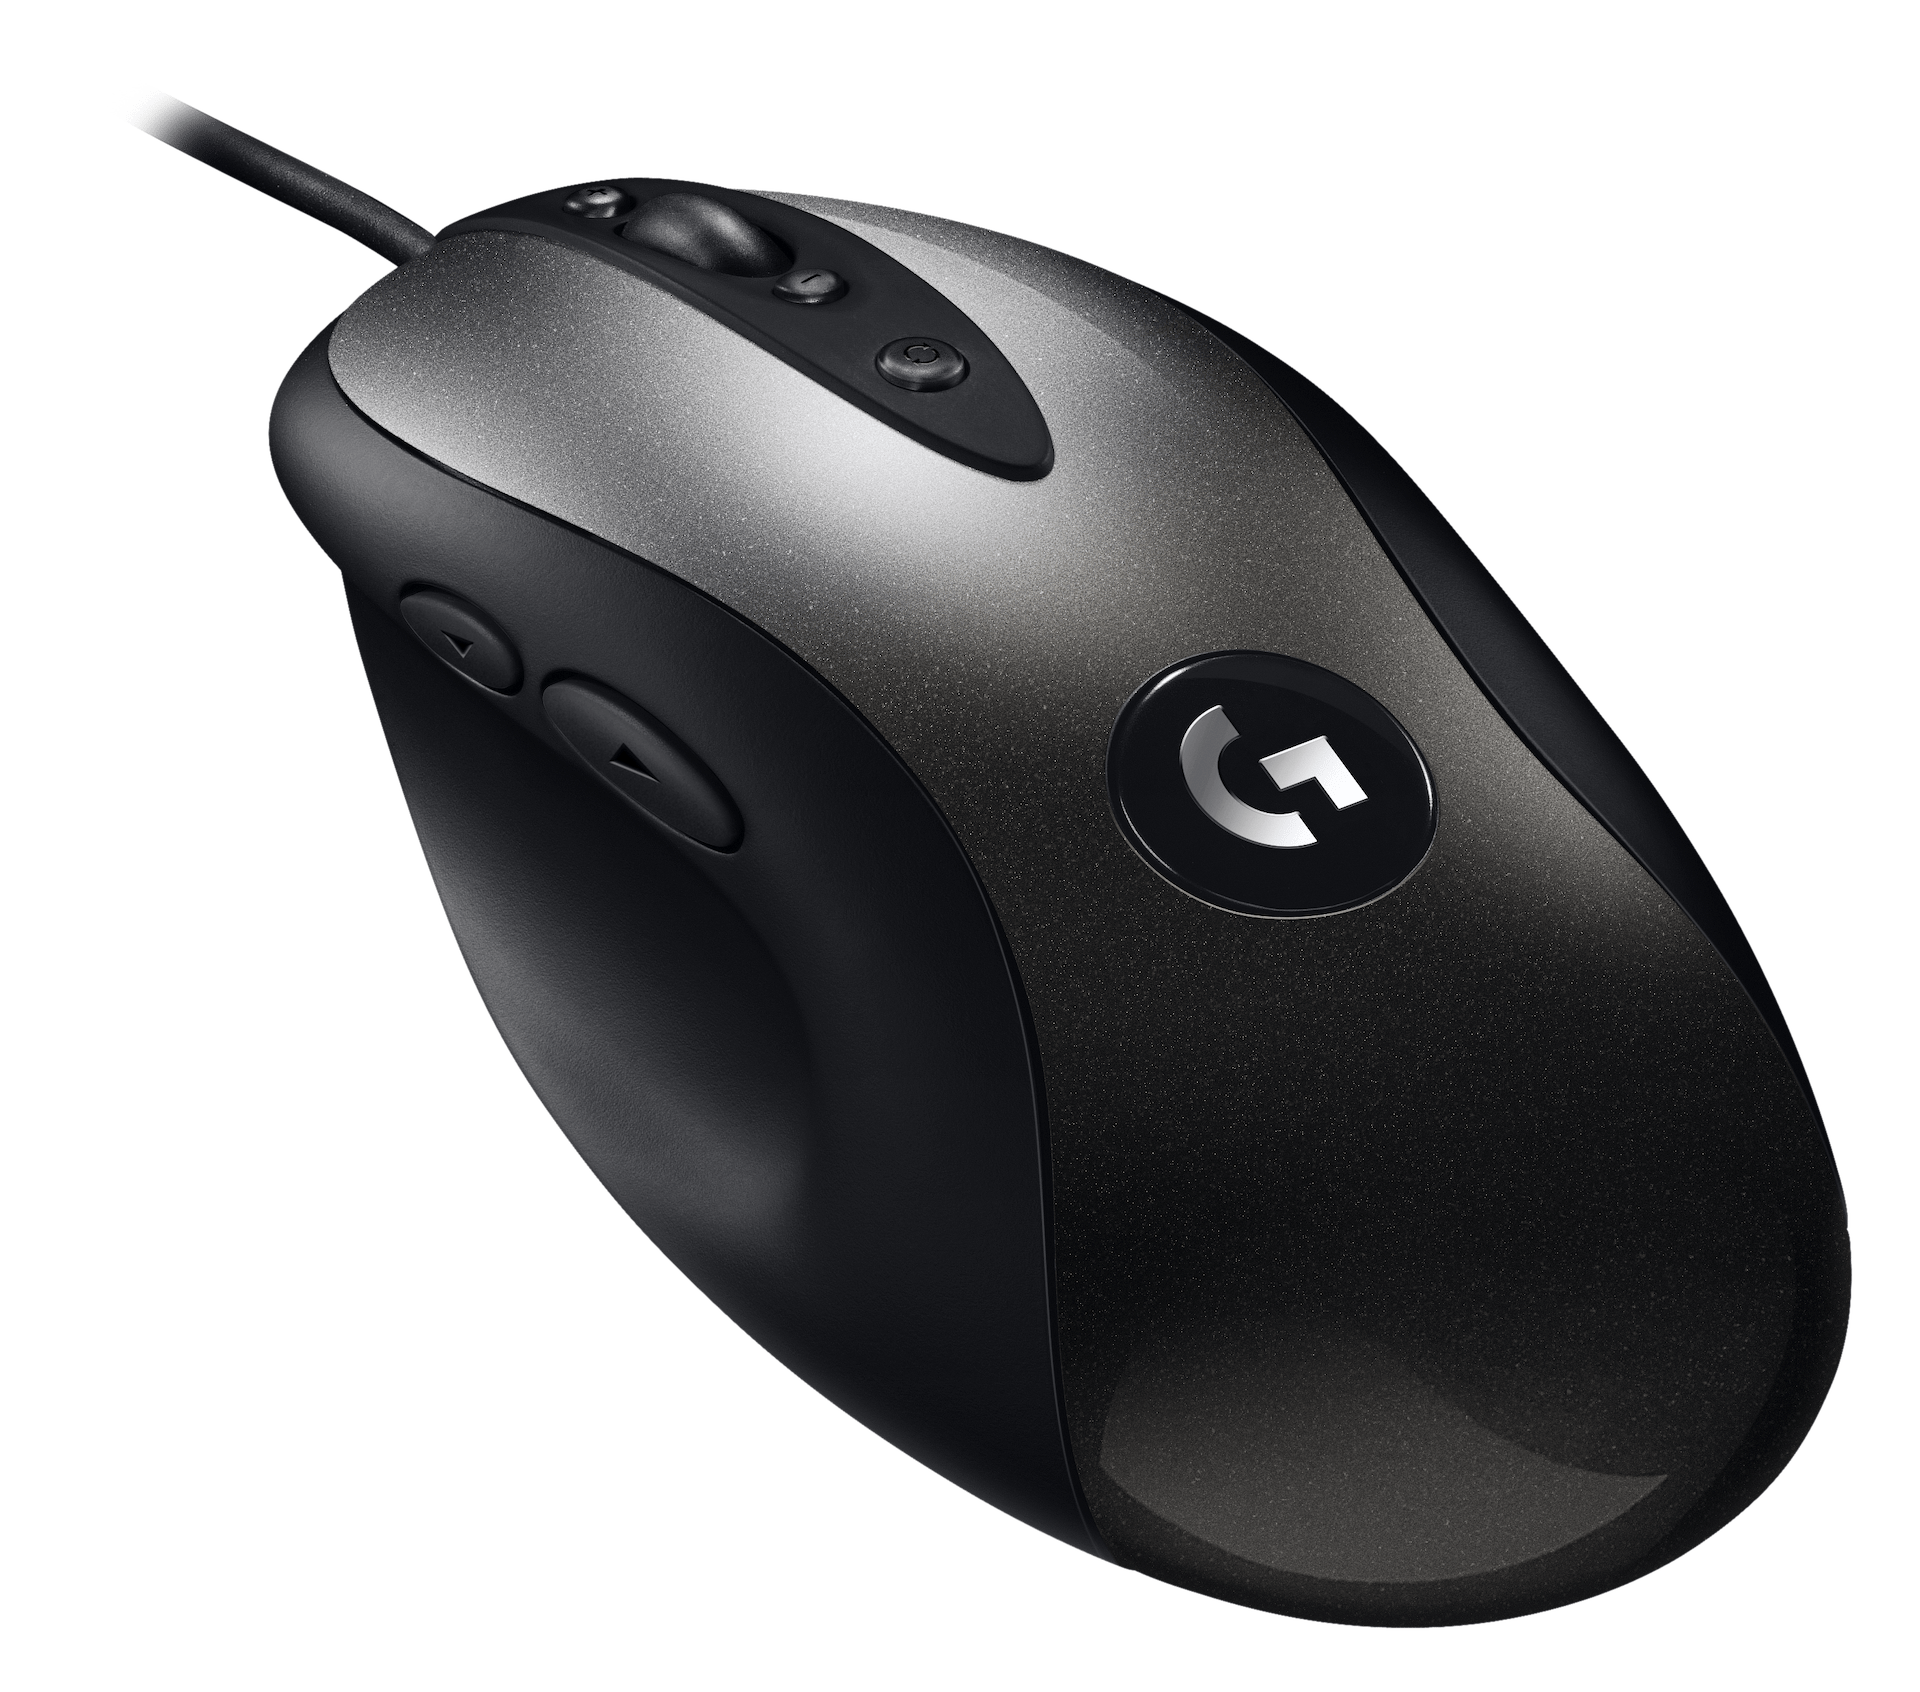 Review Logitech MX518: Wederopstanding van een legende